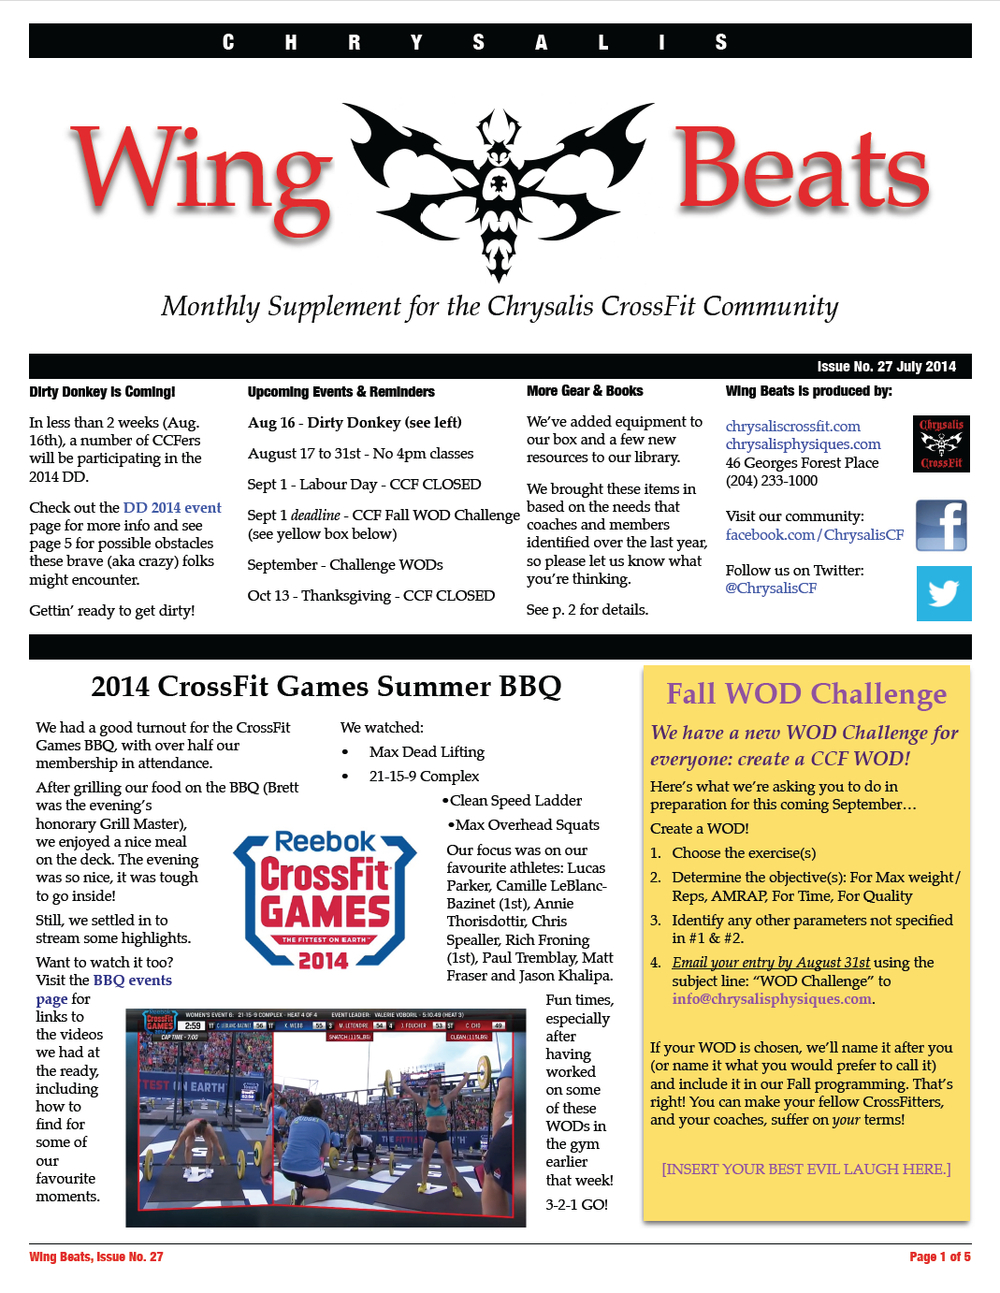 WingBeats Issue #27 - July 2014